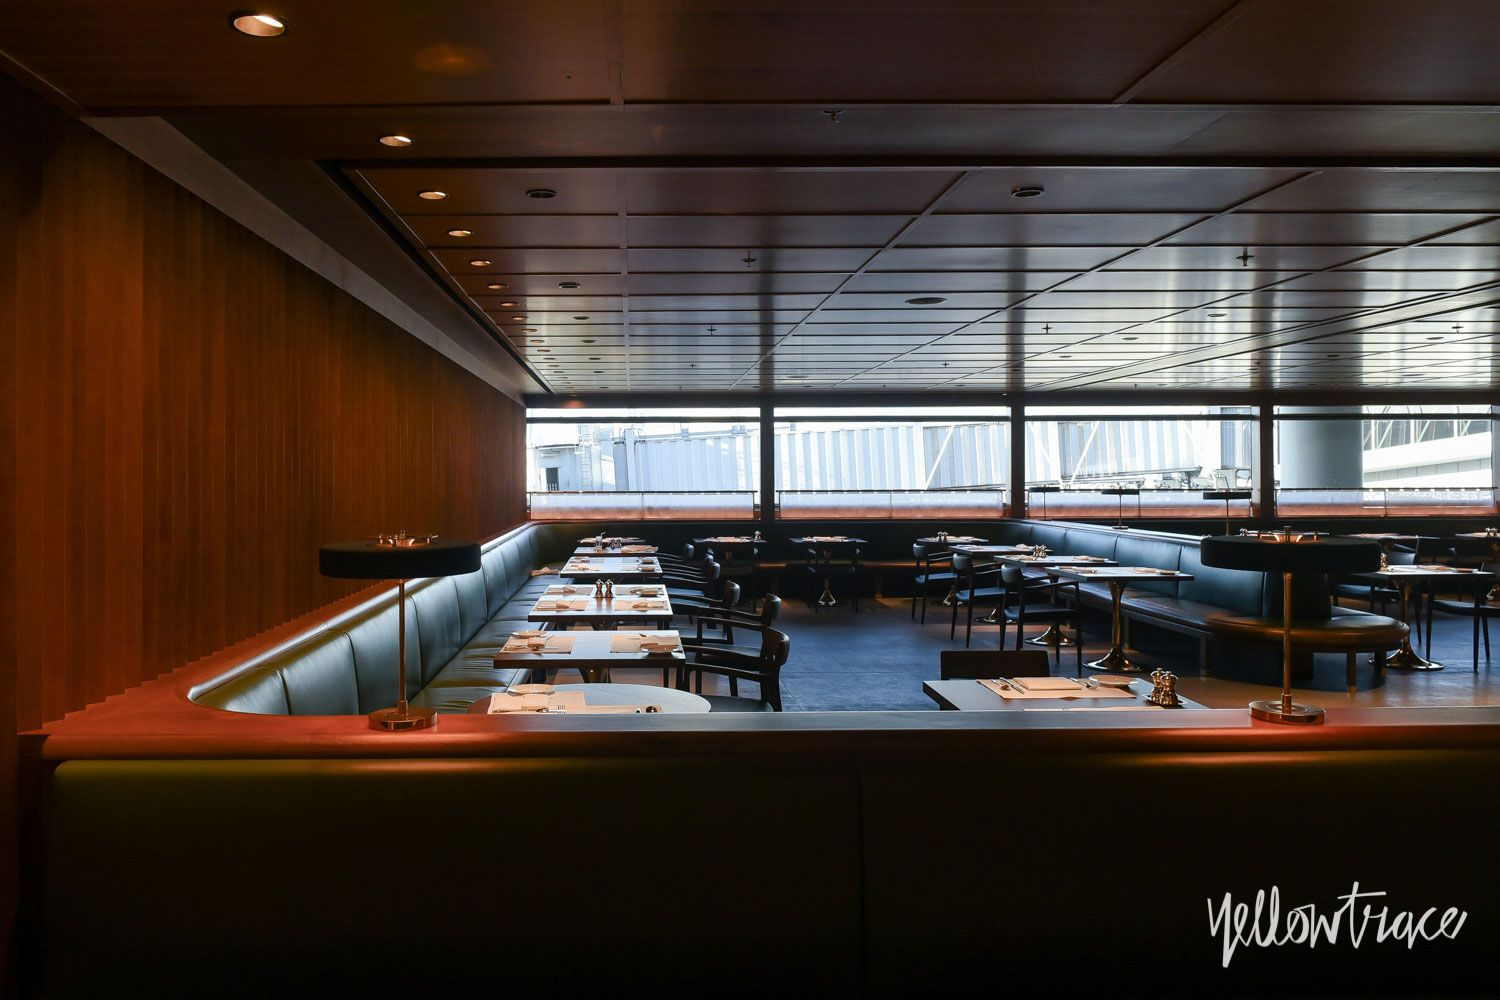 Cathay Pacific S The Pier First Class Lounge In Hong Kong By Ilse